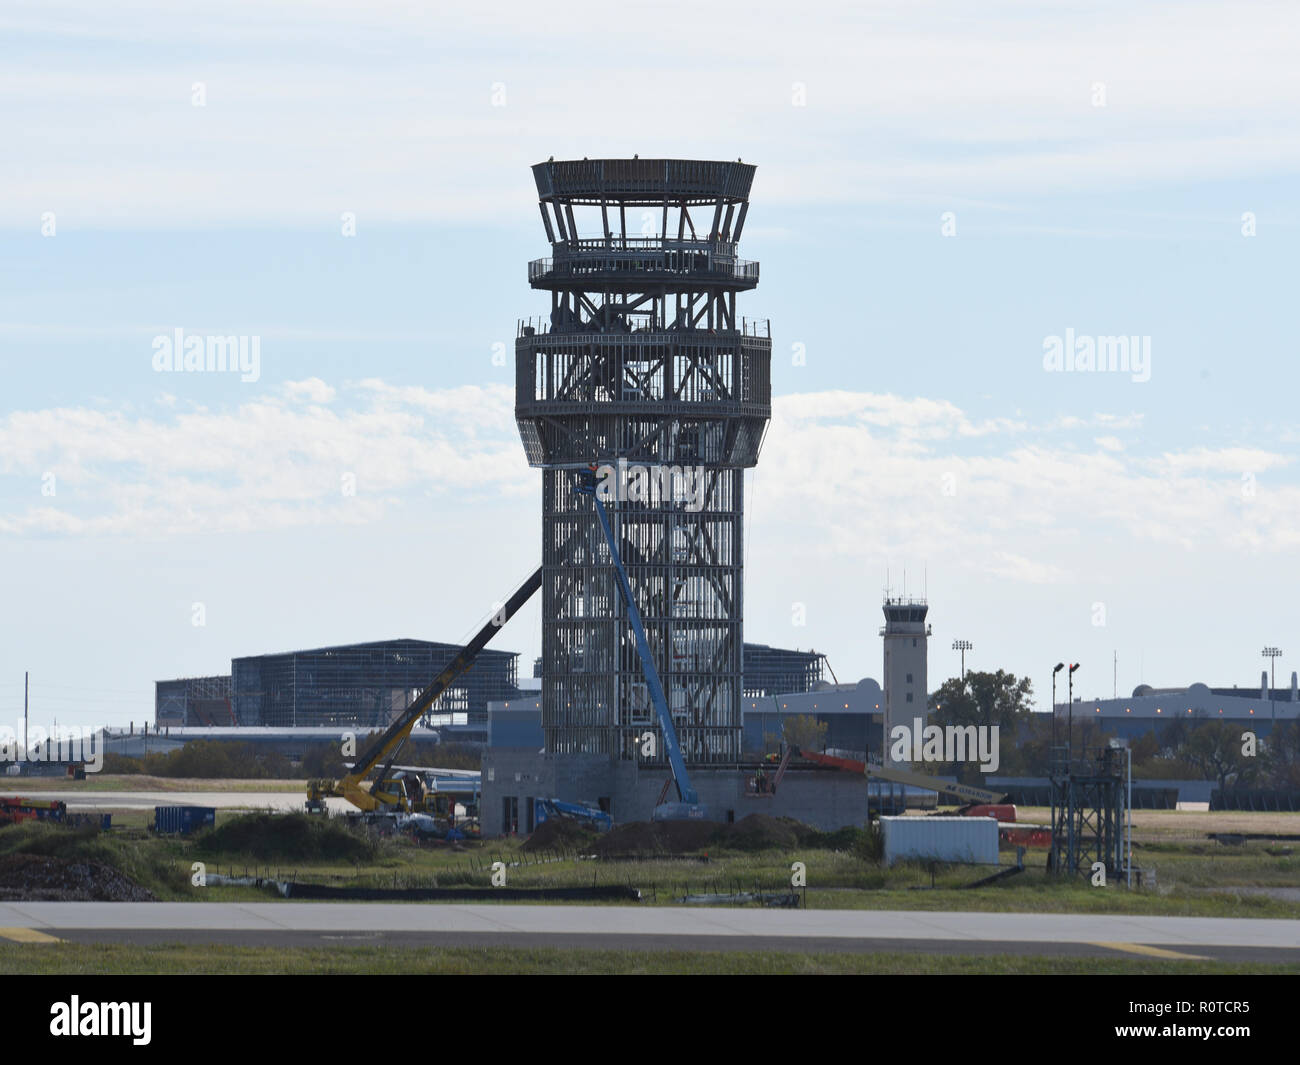 Photo showing the construction progress for the new air traffic control tower (with the old ATC tower visible in the background) Nov. 6, 2018, Tinker Air Force Base, Oklahoma. The new tower will accomodate more controllers and support personnel from a position on the airfield which gives much better overall views of the field and approach/departure corridors. (U.S. Air Force photo/Greg L. Davis) - Stock Image